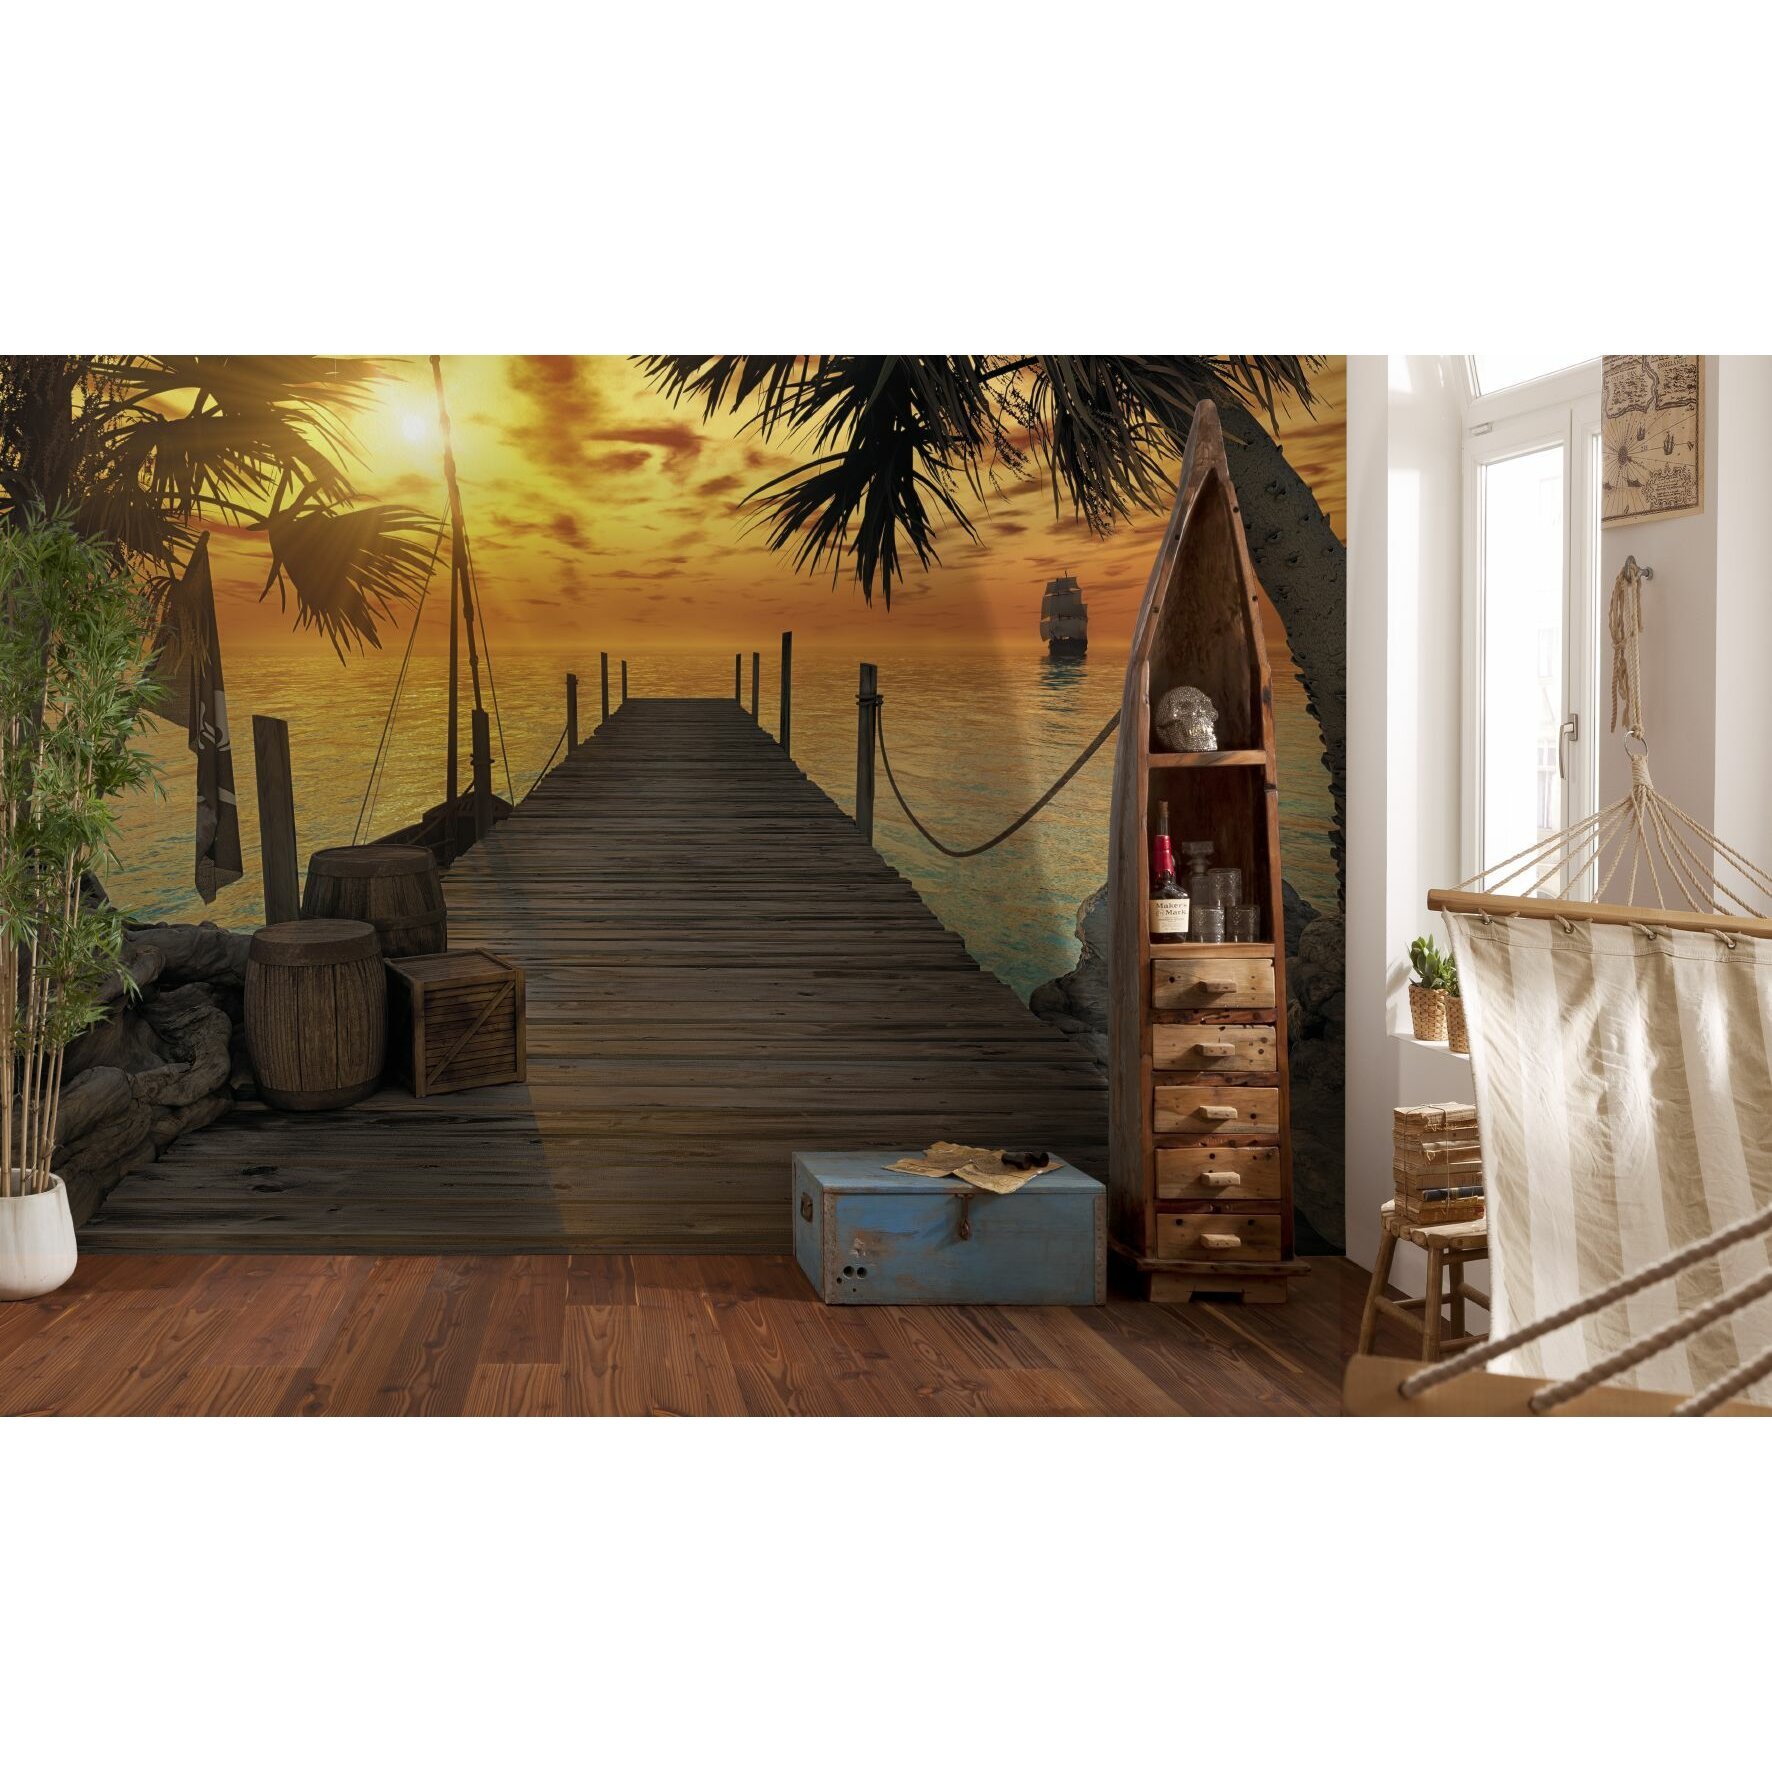 Brewster home fashions komar treasure island dock wall for Brewster wall mural